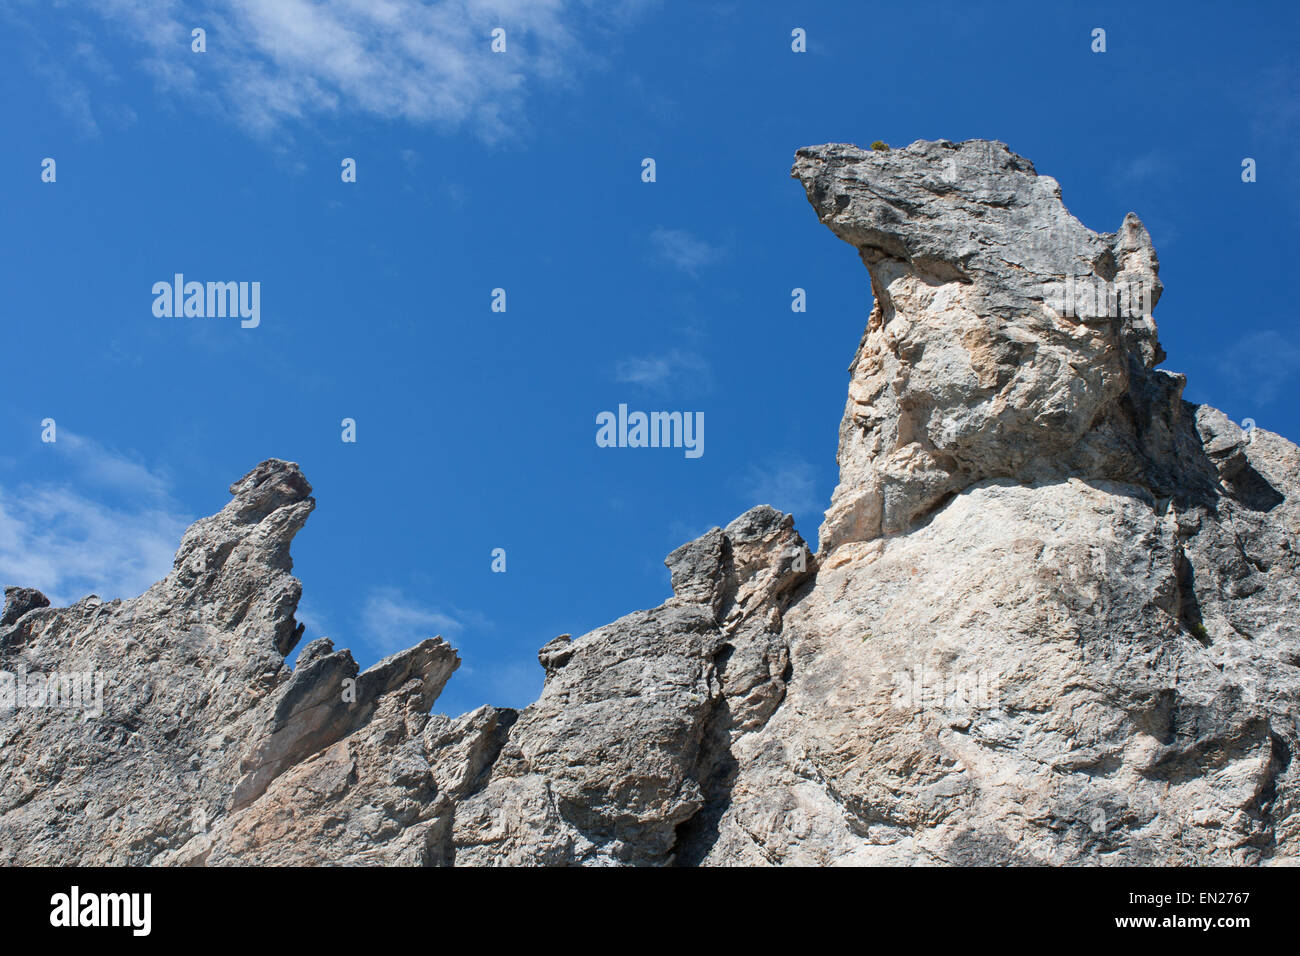 rock formation Ofenpass Switzerland Engadin Alps mountains against blue sky - Stock Image